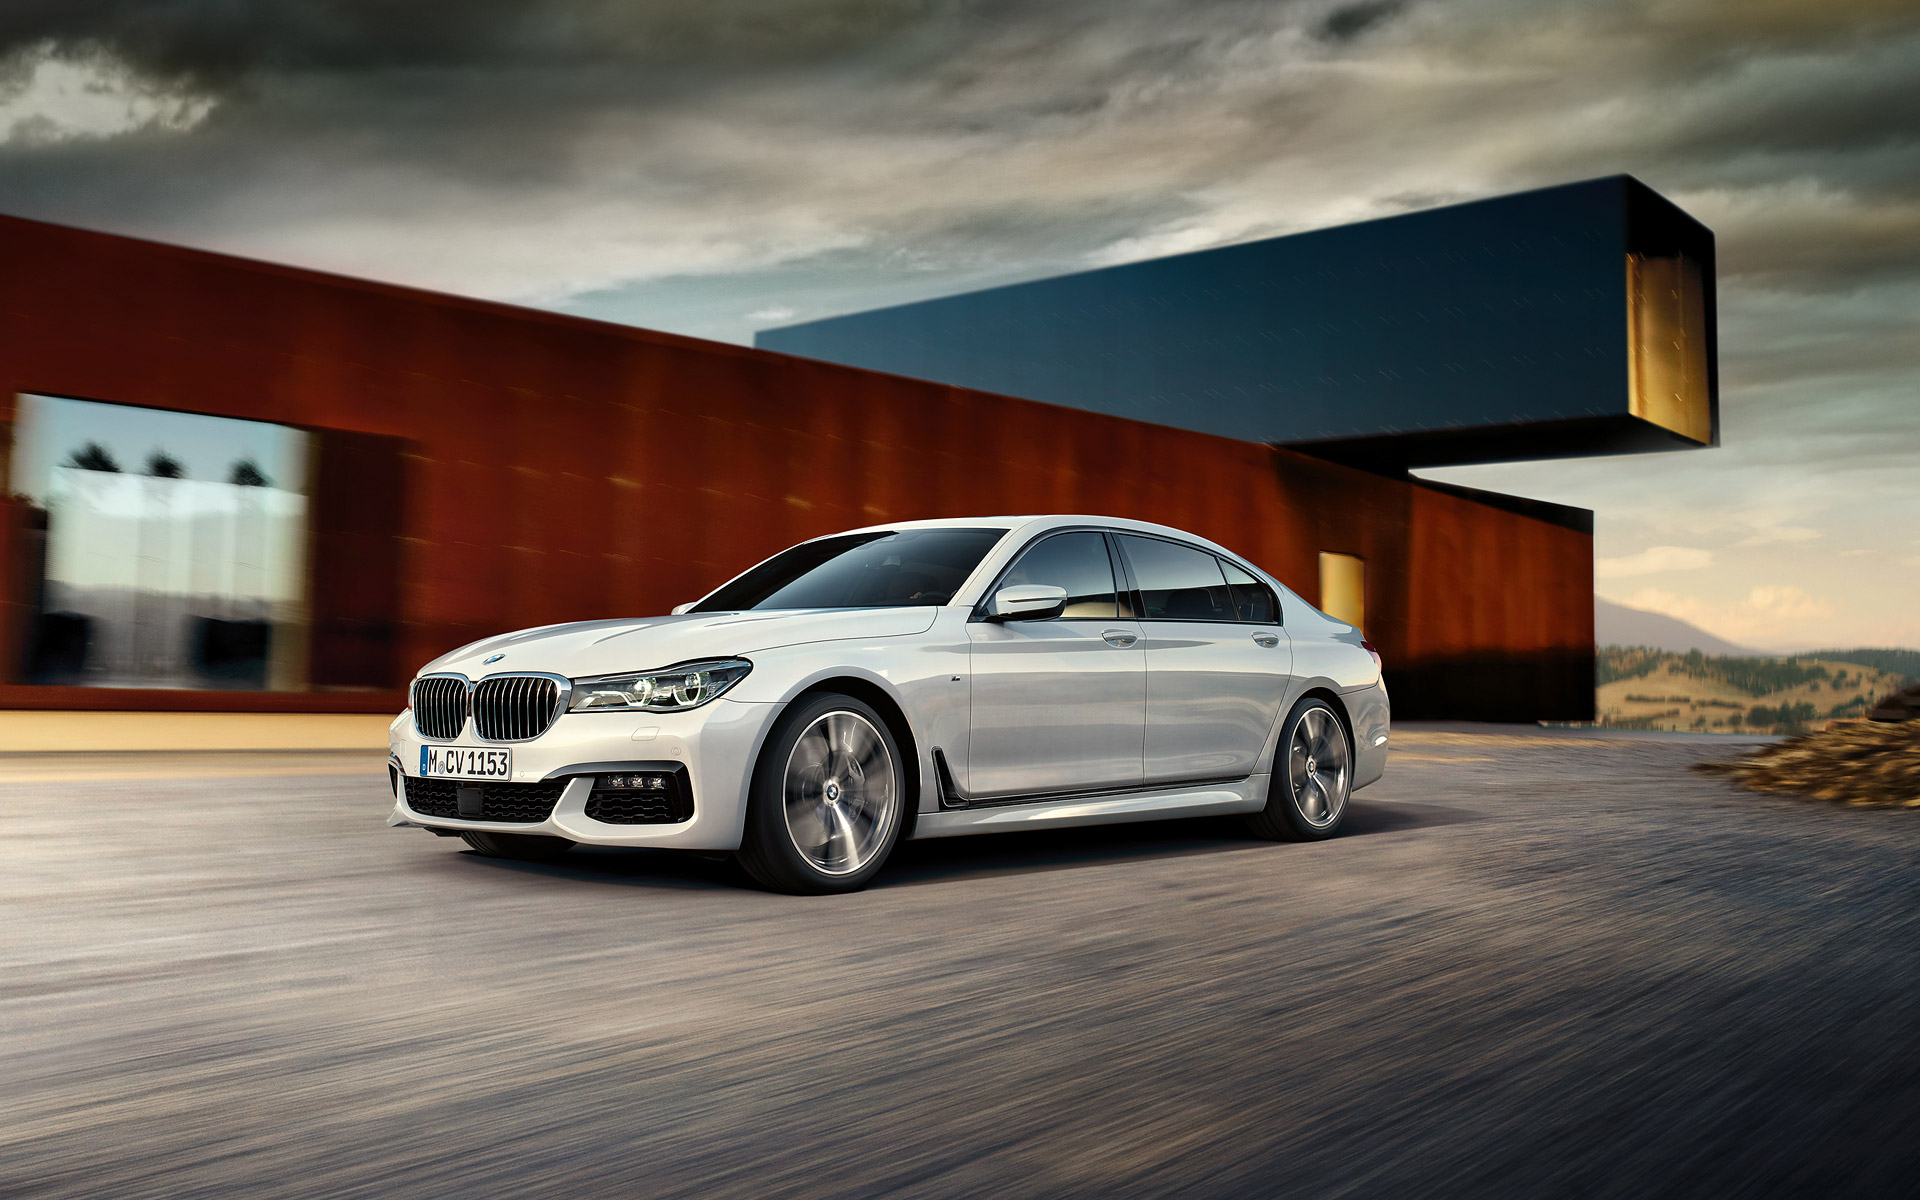 Us Pricing Order Guide For 2016 Bmw 7 Series